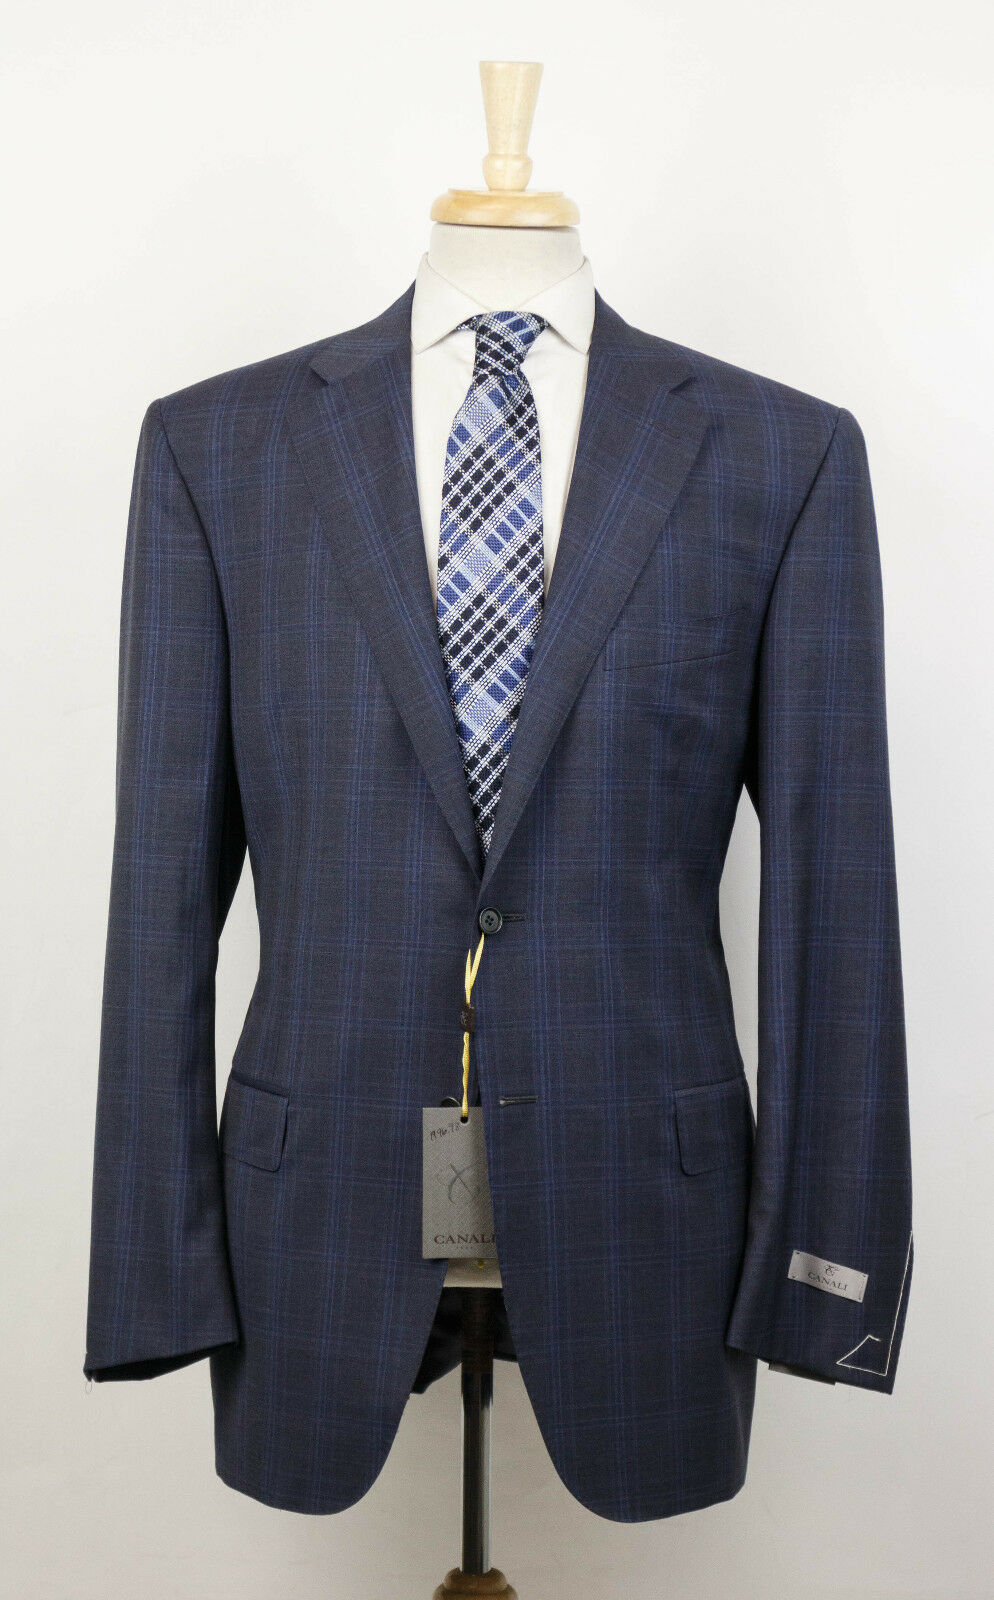 NWT CANALI 1934 grau Plaid Wool 2 Button Suit Größe 50/40 R Drop 7 1895